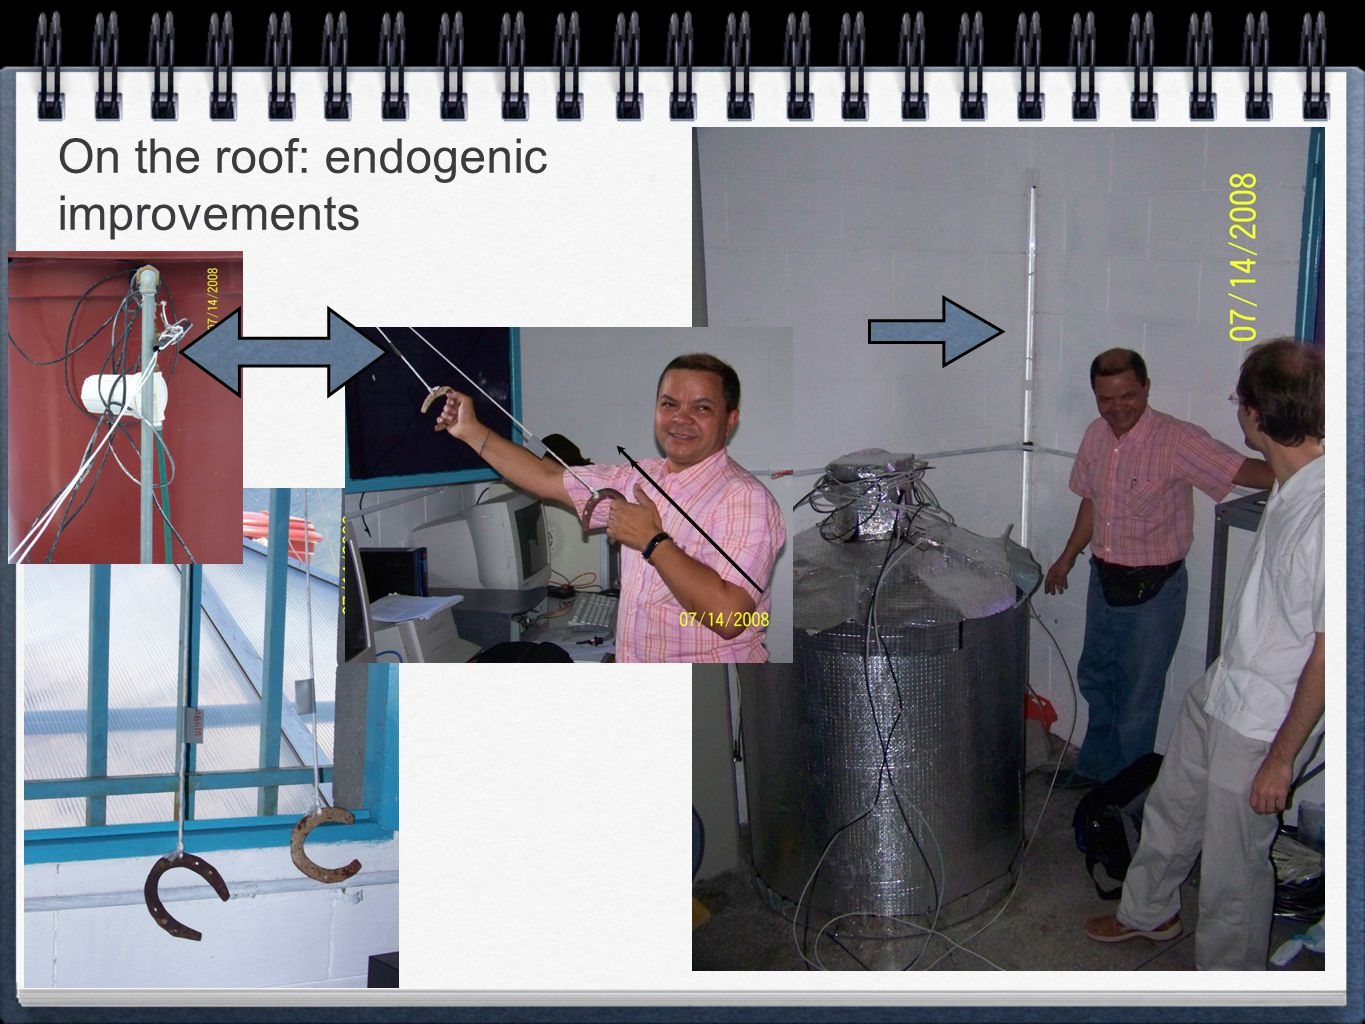 On the roof: endogenic improvements